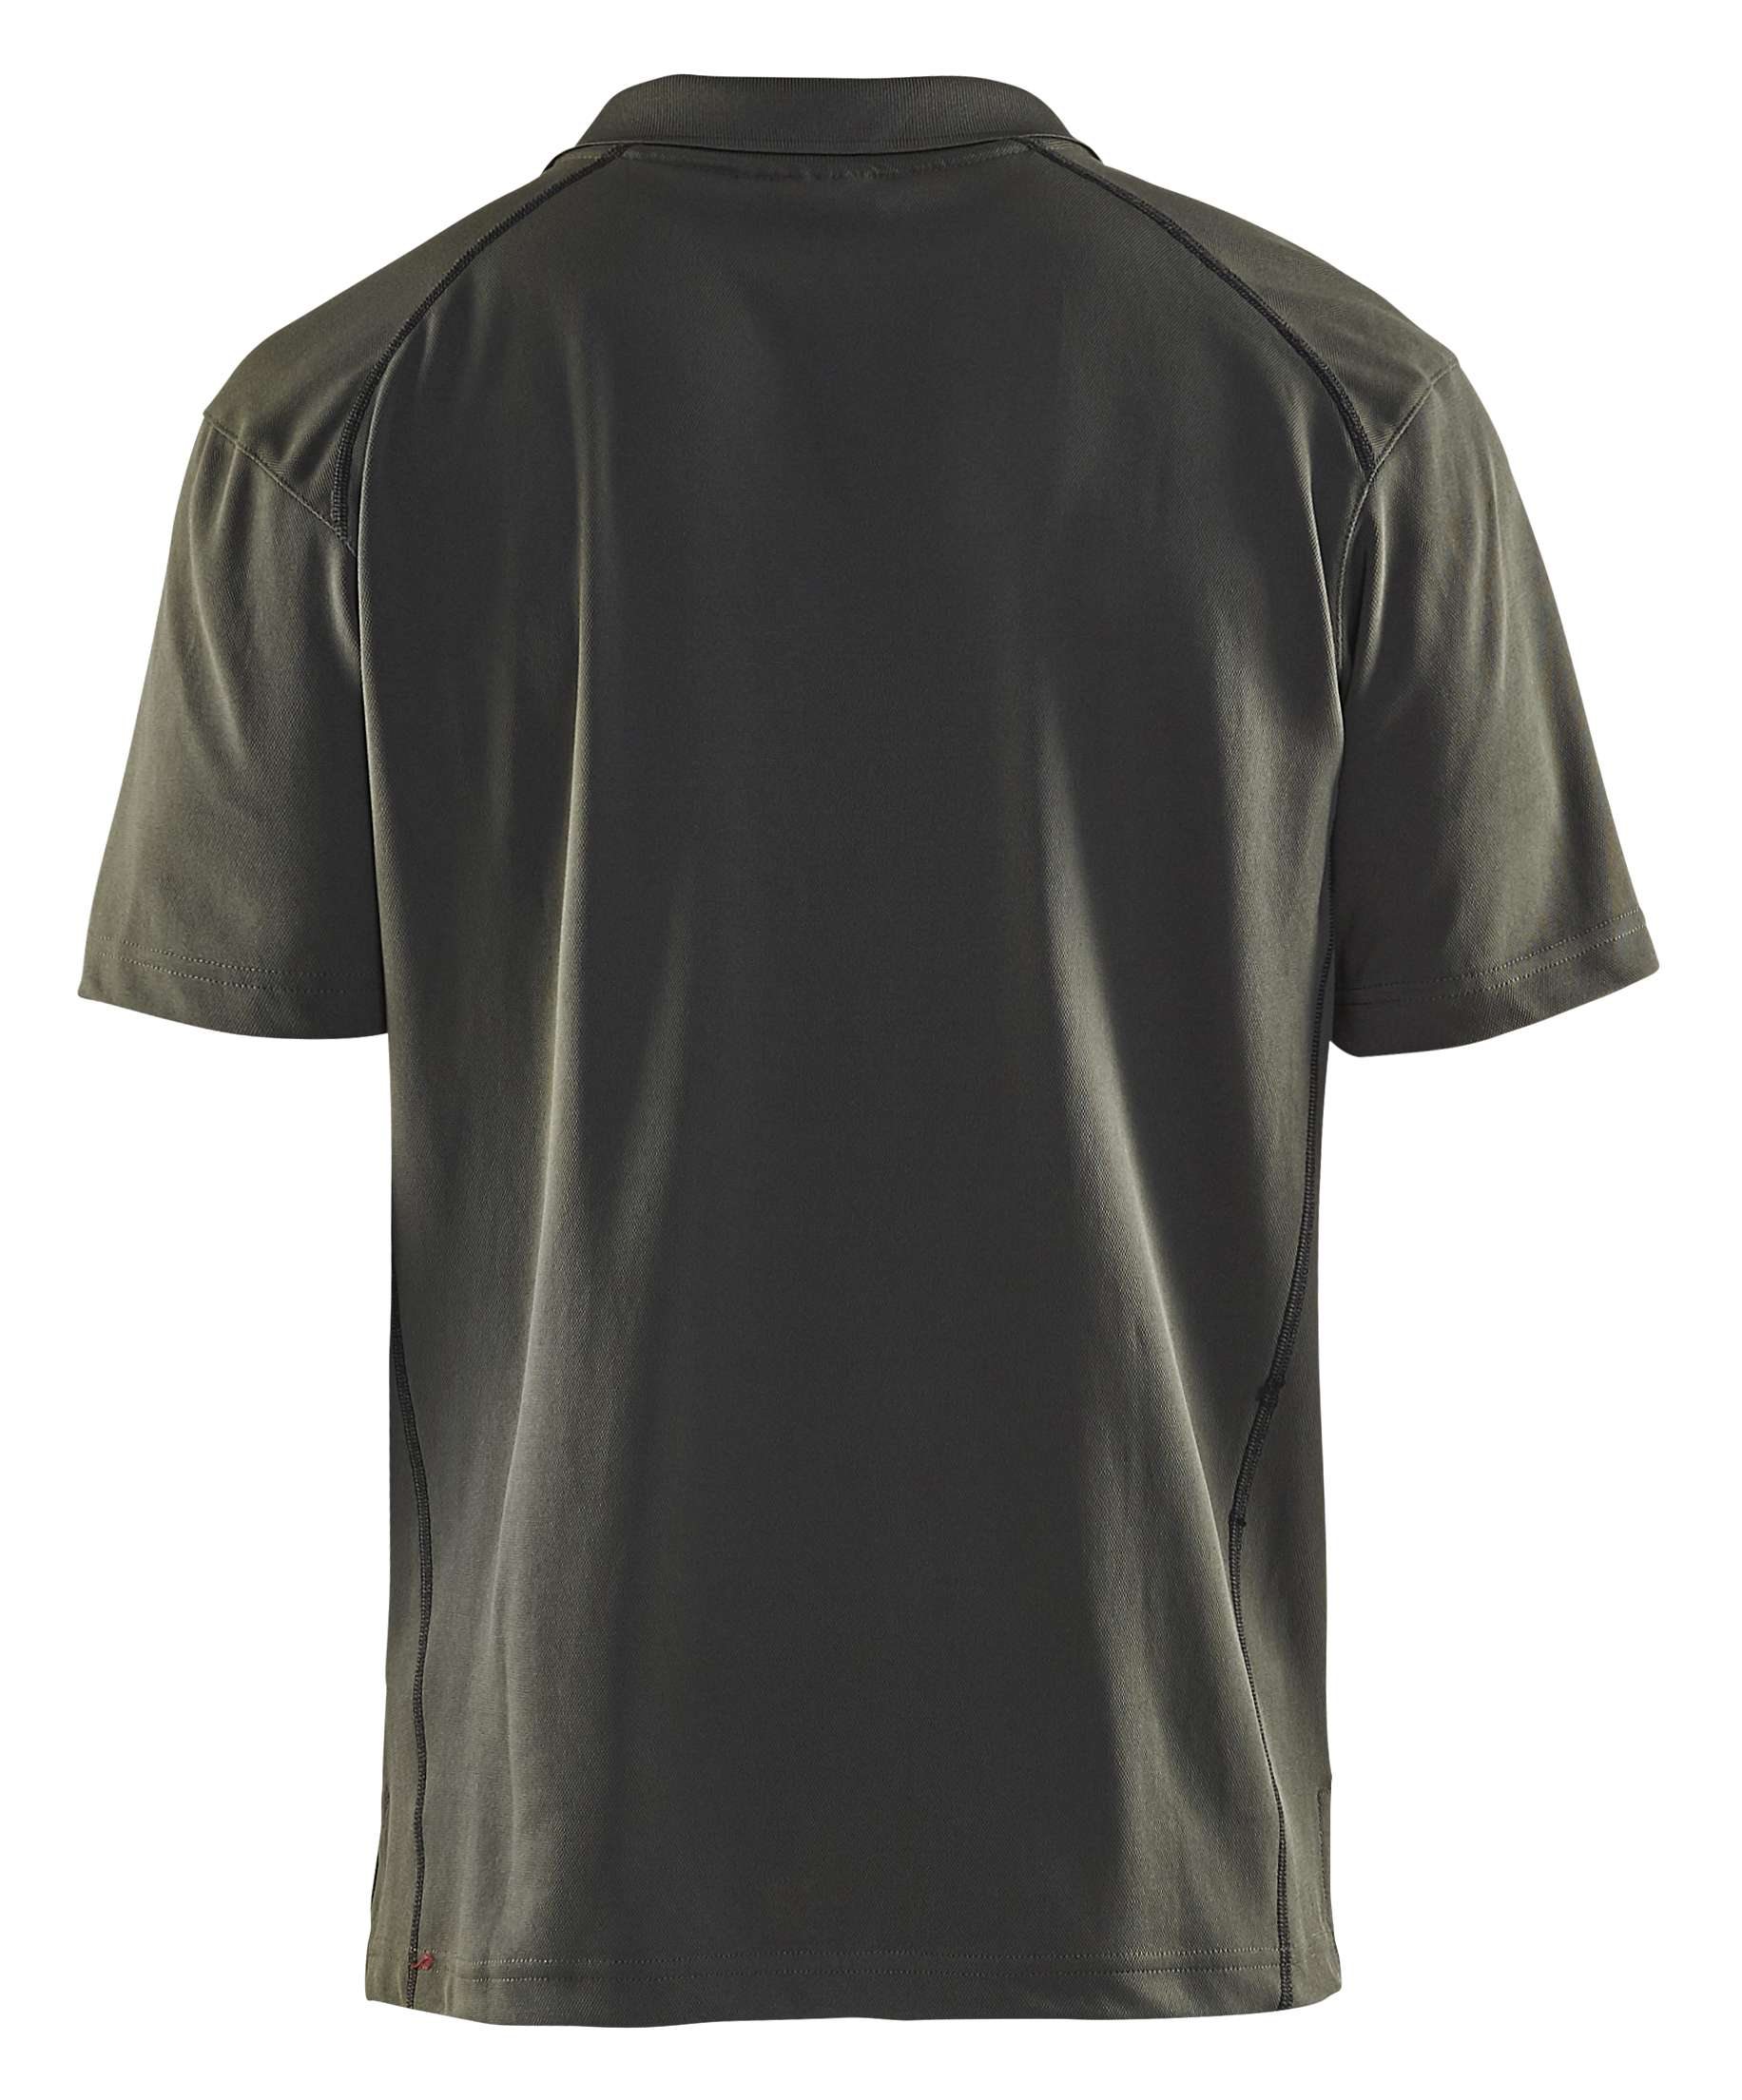 Blaklader Polo shirts 33261051 army groen(4600)